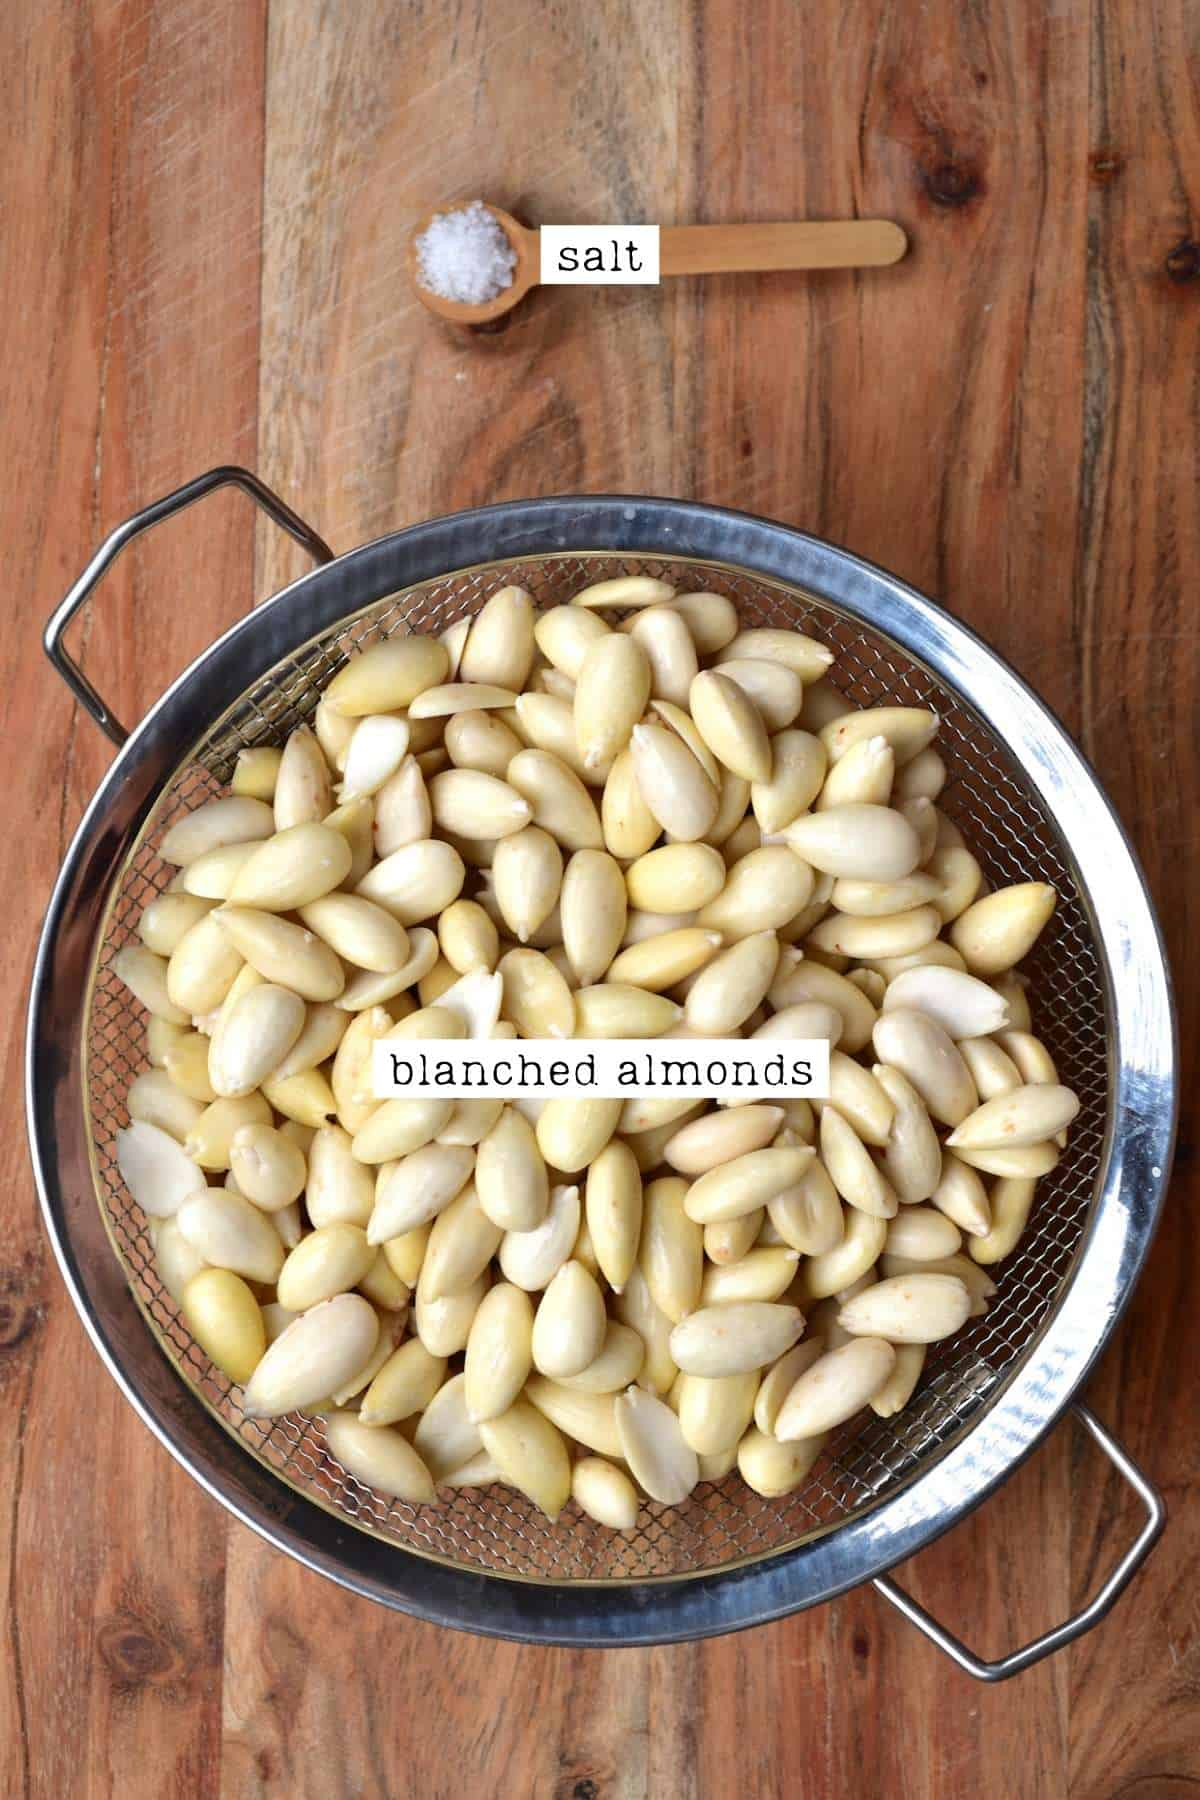 Blanched almonds and salt